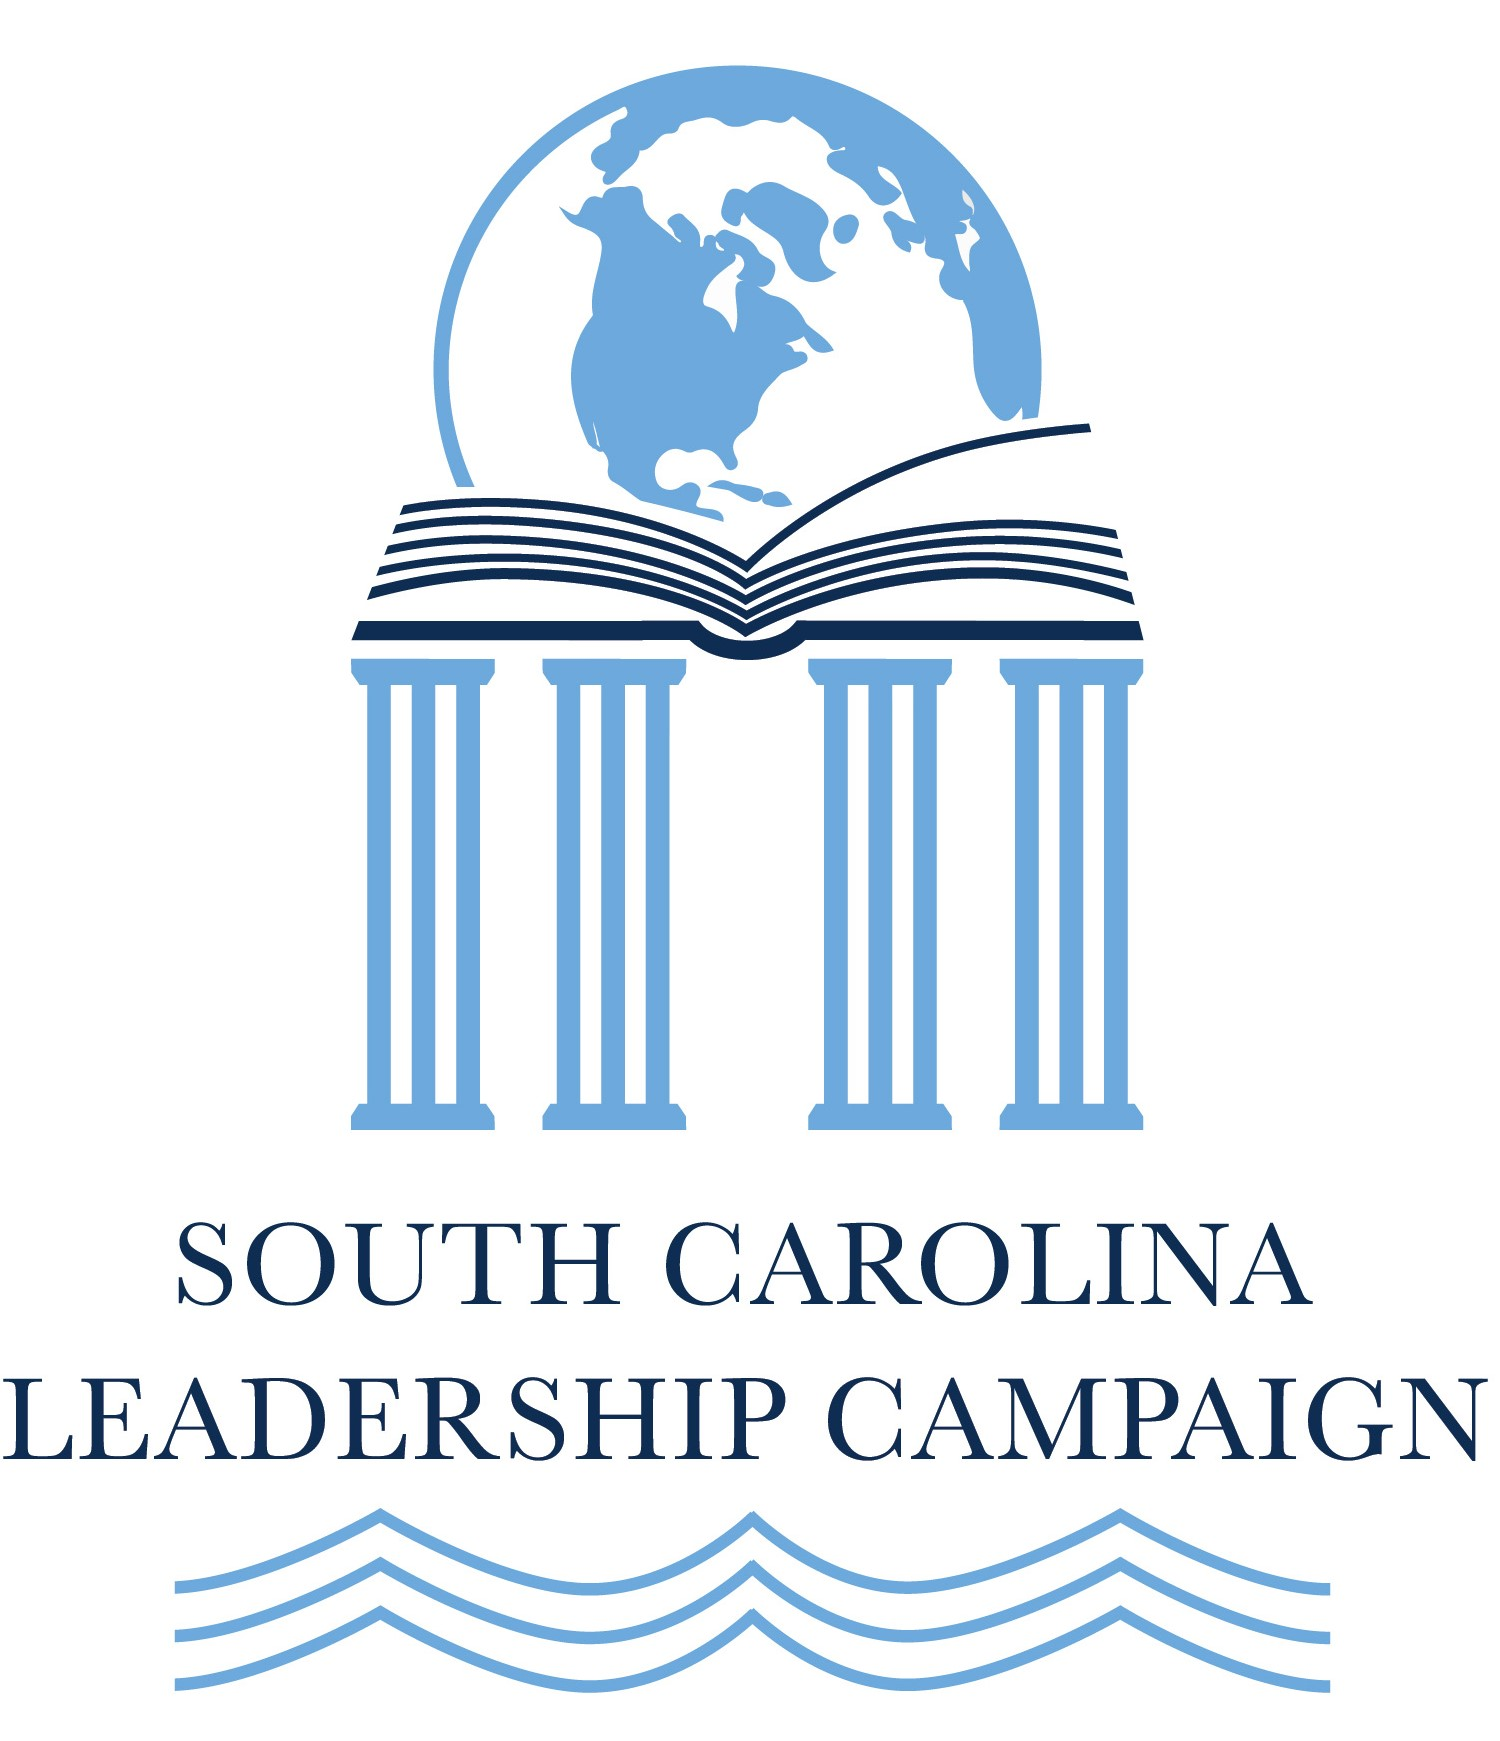 South Carolina Leadership Campaign